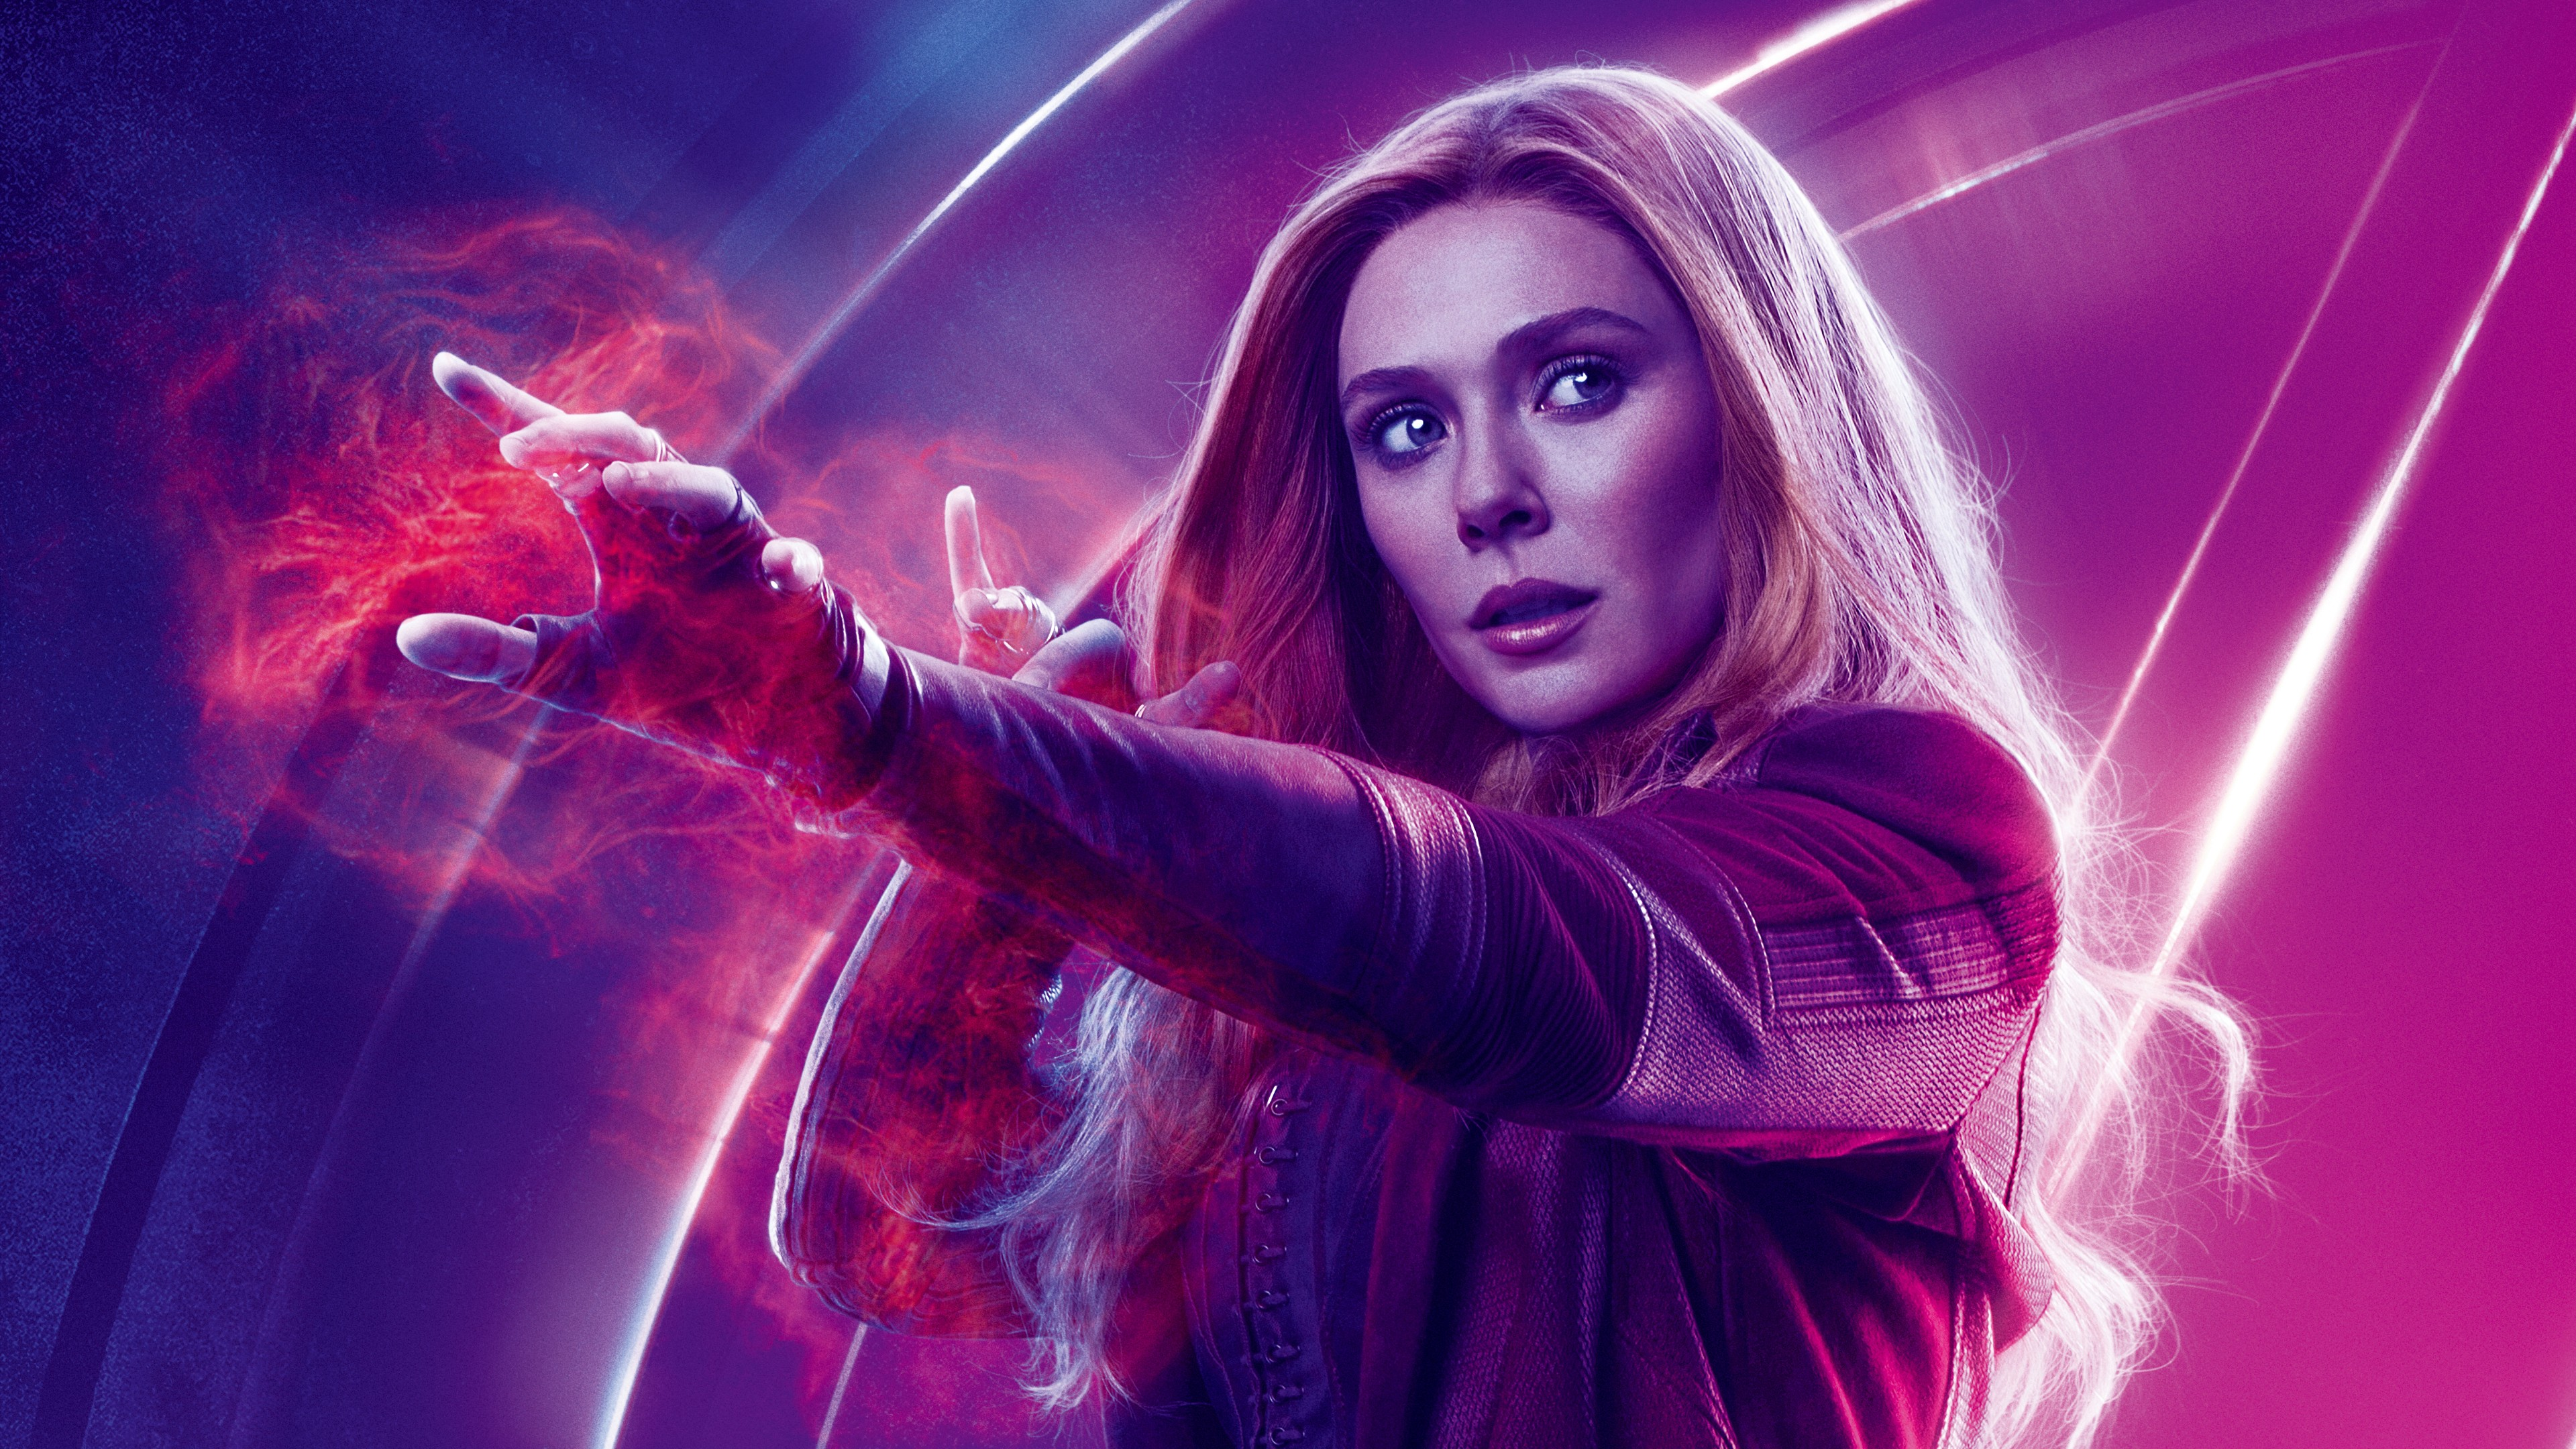 3d Wallpaper For Ipad Pro Elizabeth Olsen As Scarlet Witch Avengers Infinity War 4k